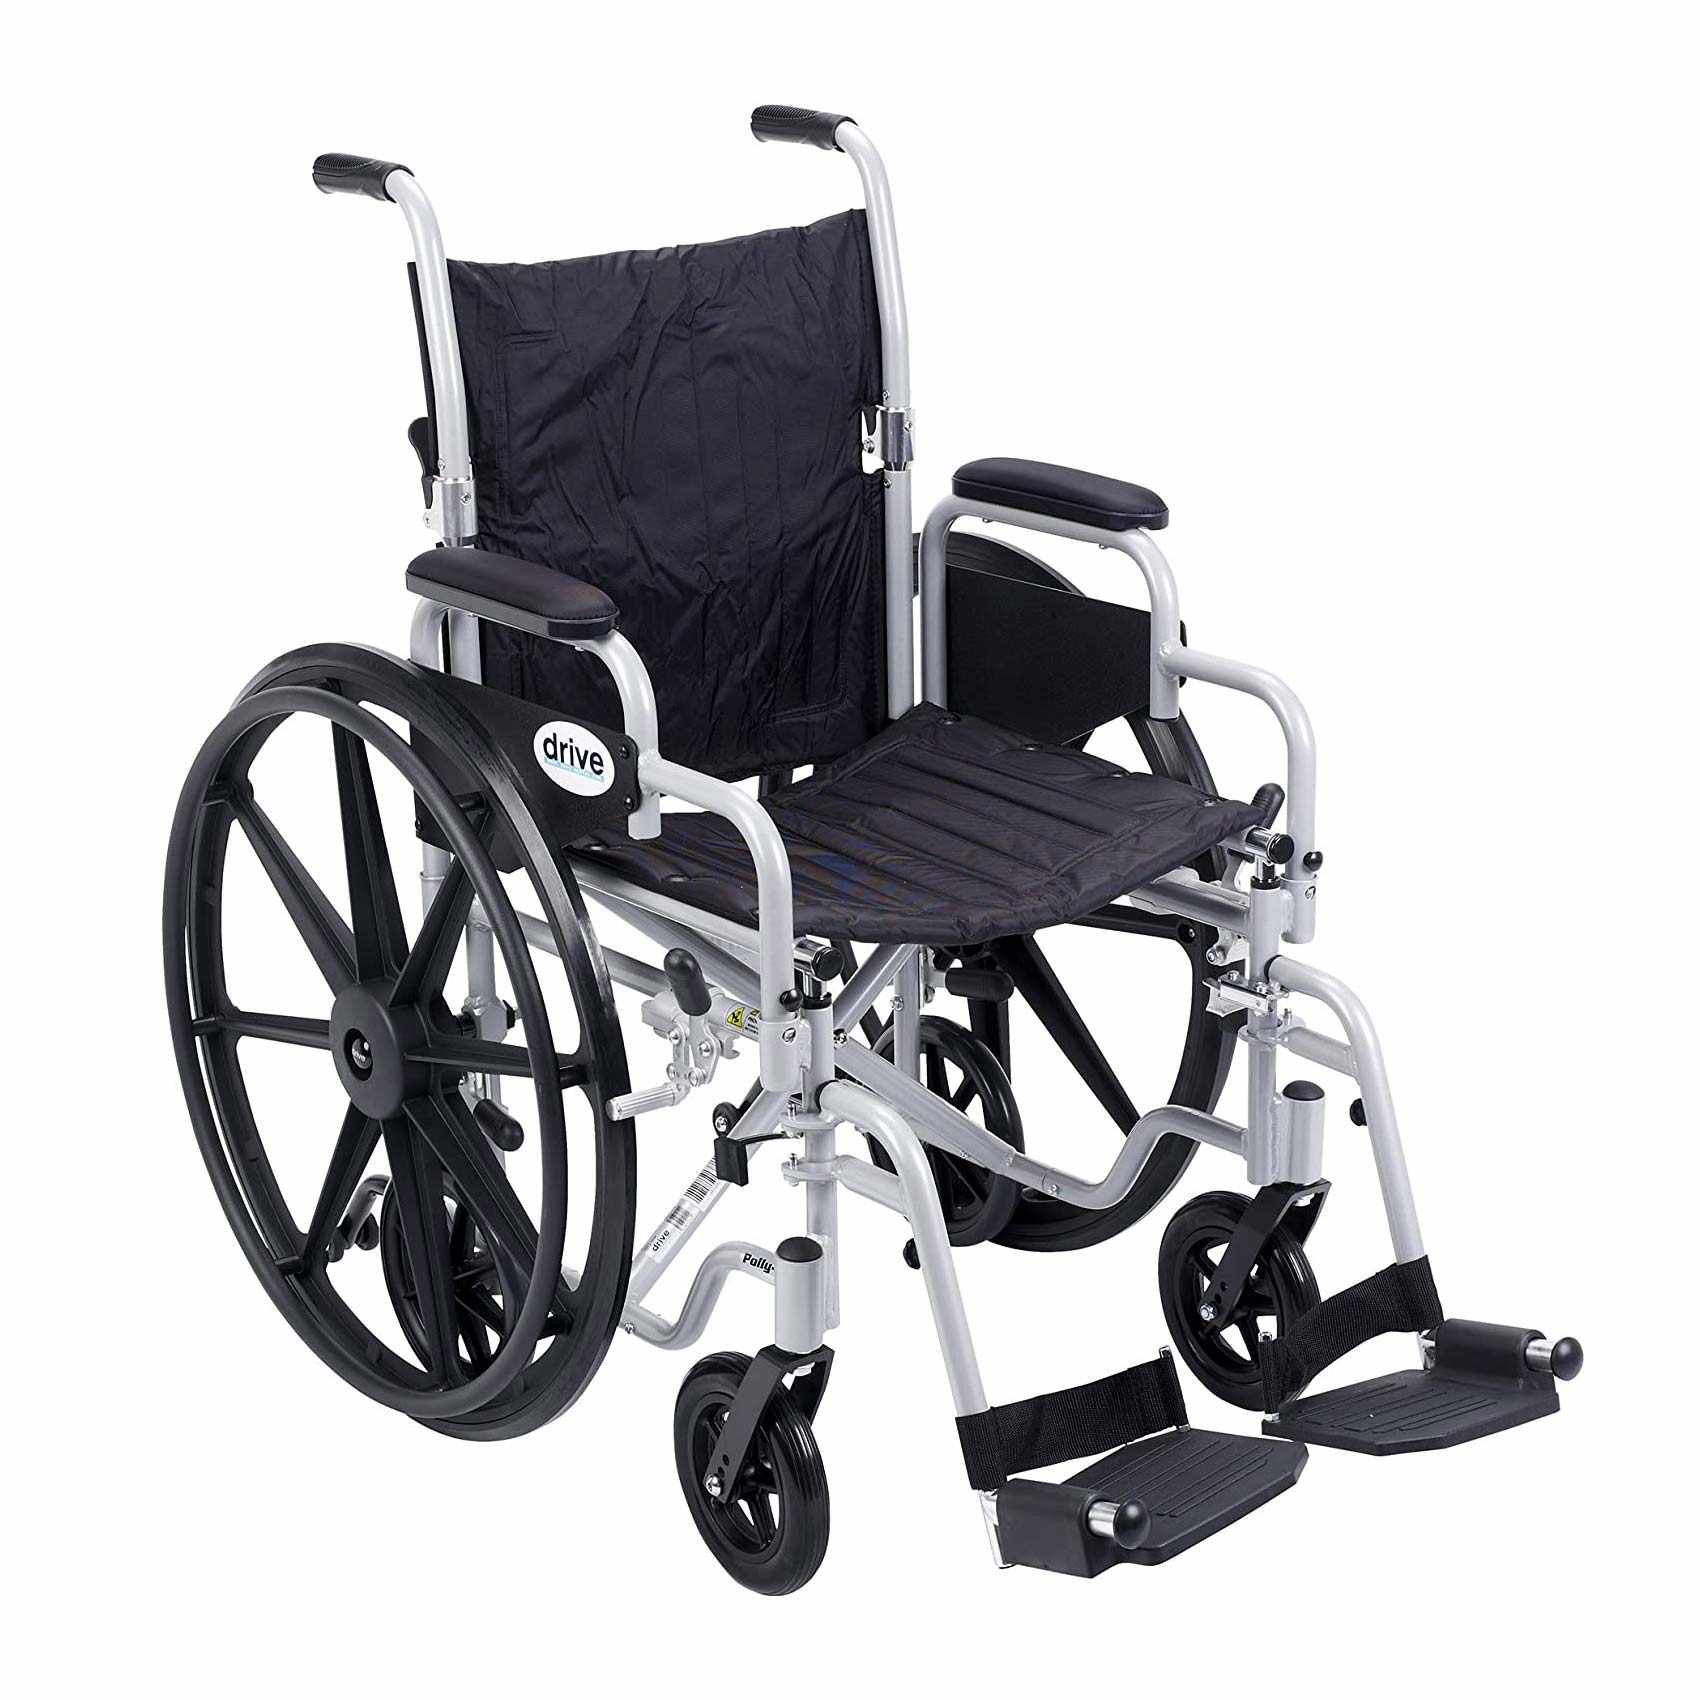 Drive Medical Poly-Fly high strength light weight transport wheelchair with swing-away footrest